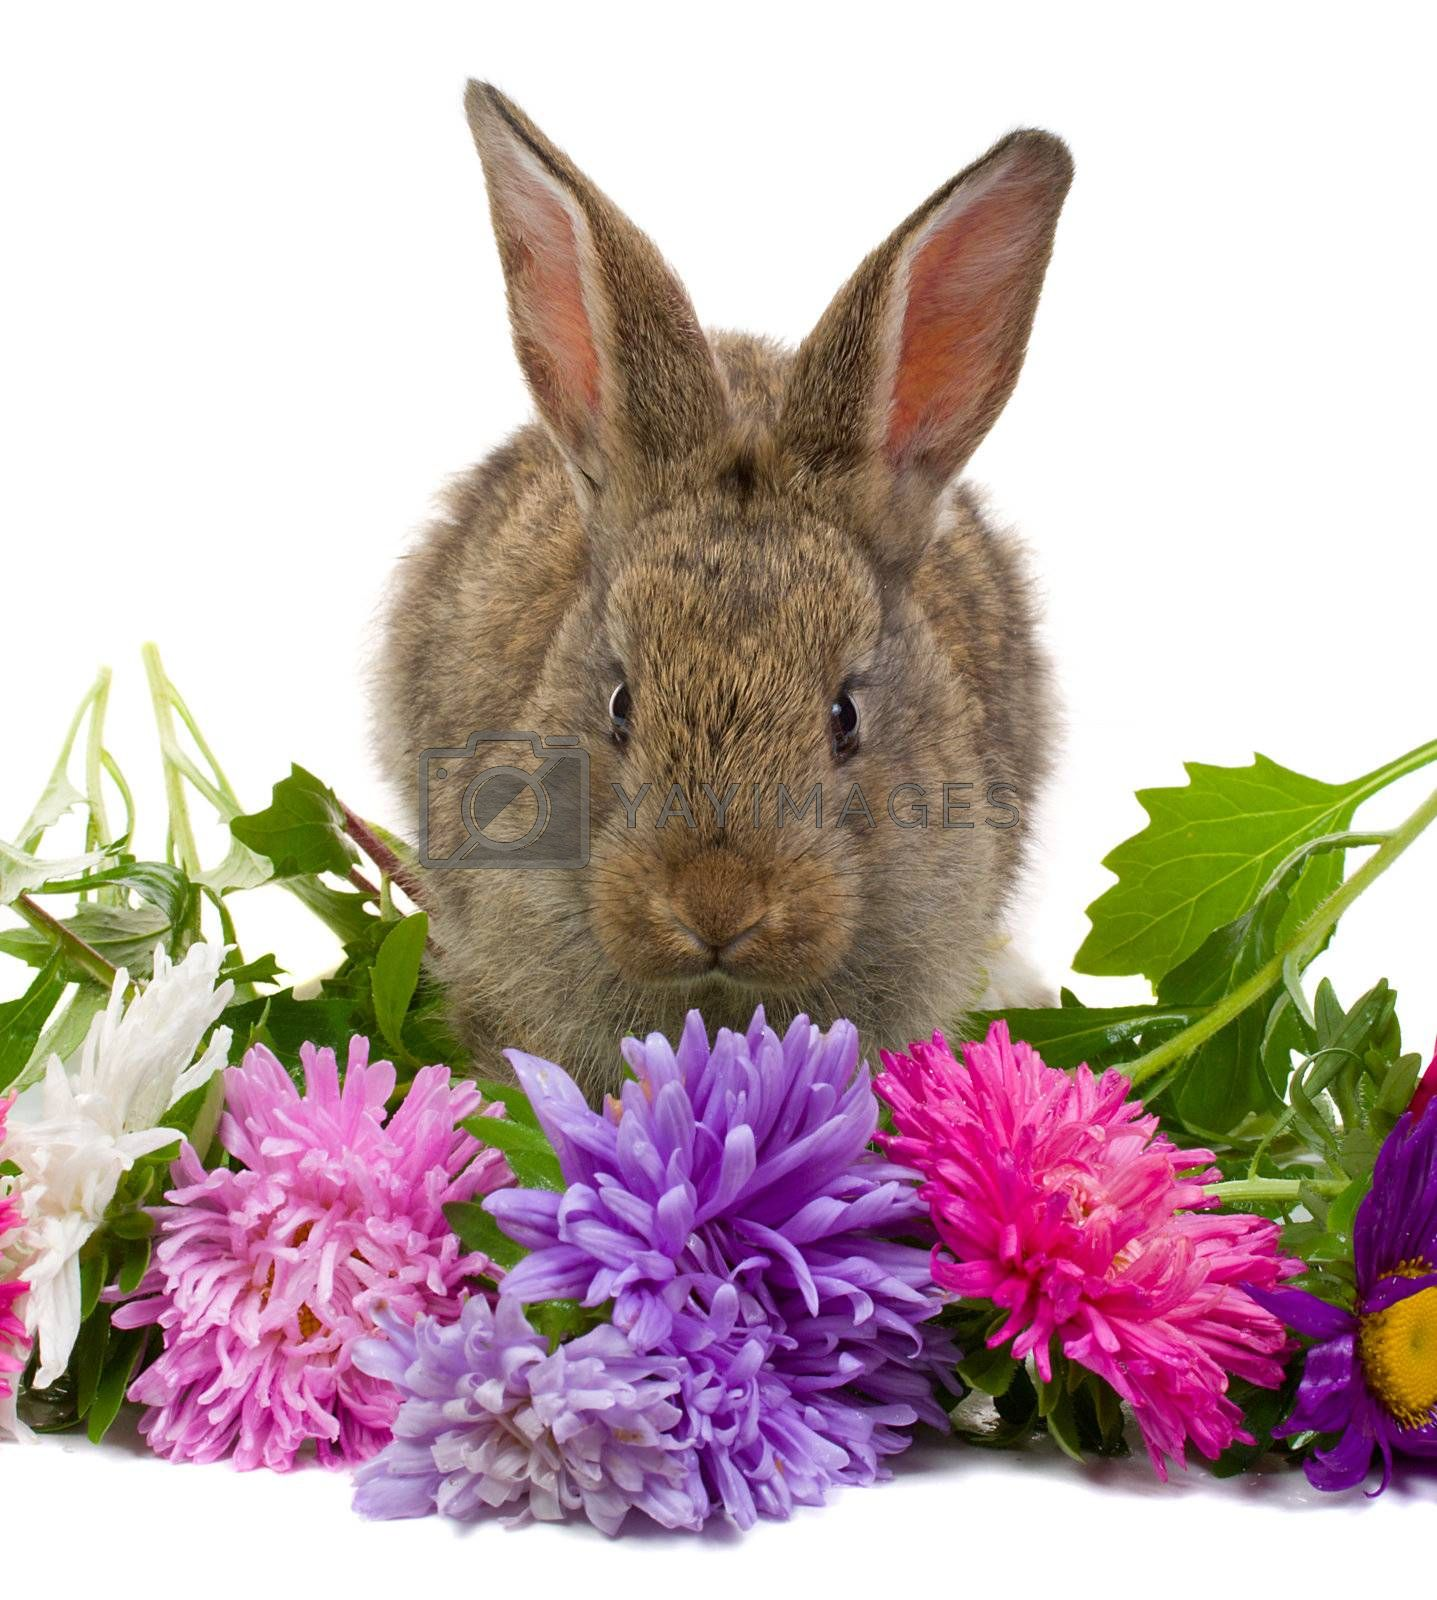 close-up bunny smelling flowers, isolated on white